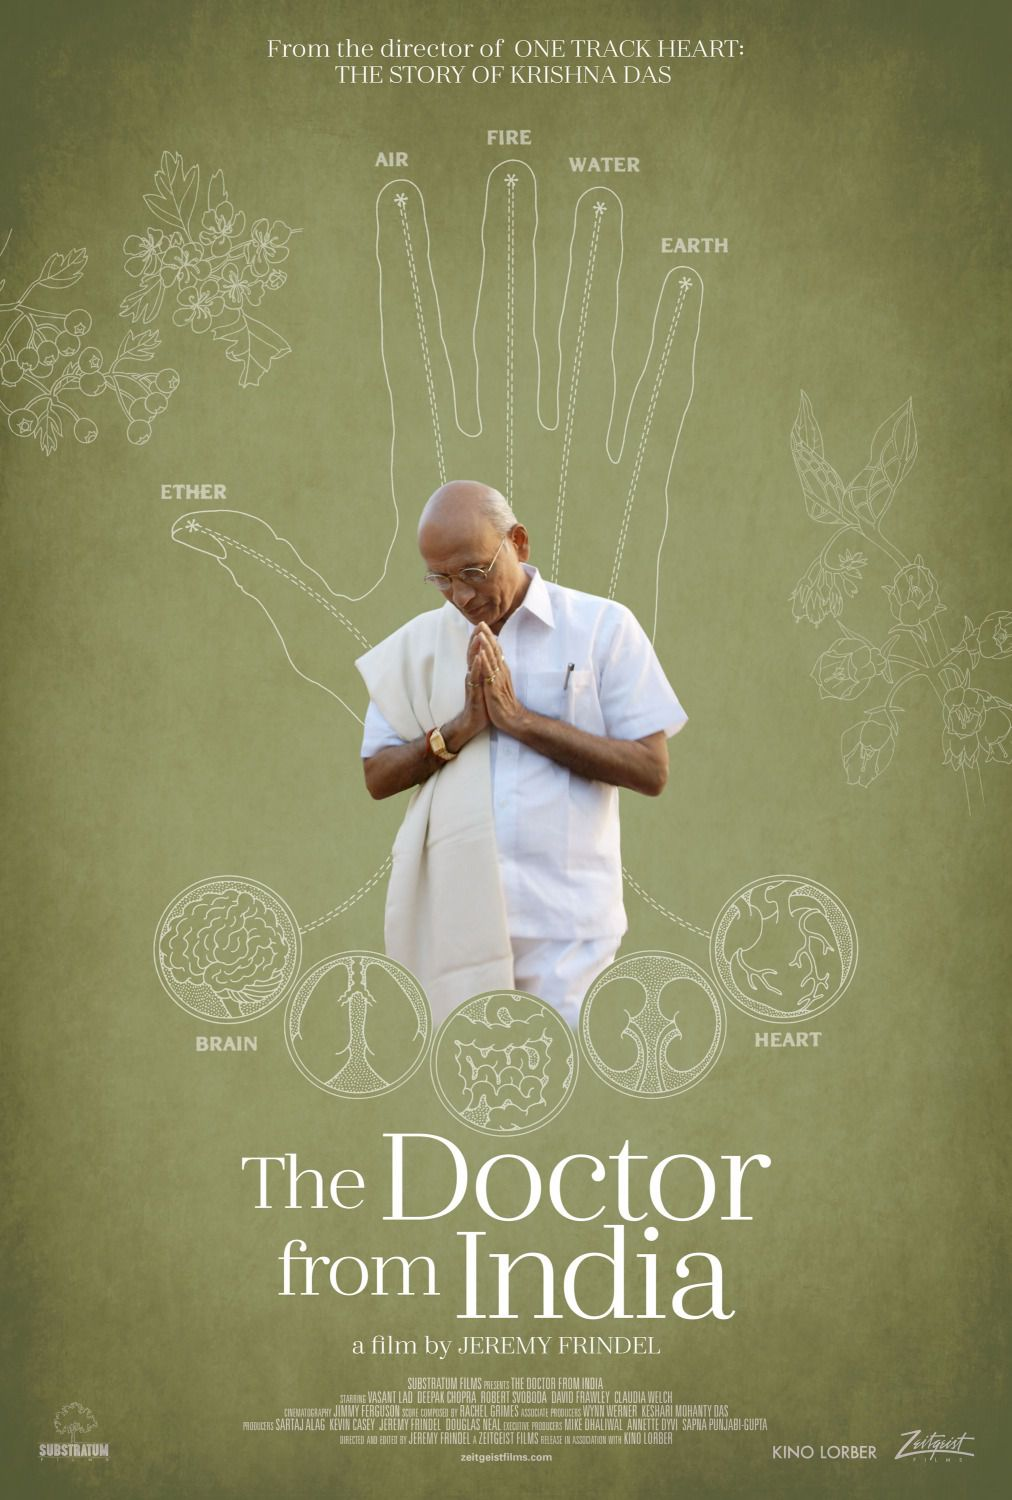 The Doctor from India by Jeremy Frindel - film poster